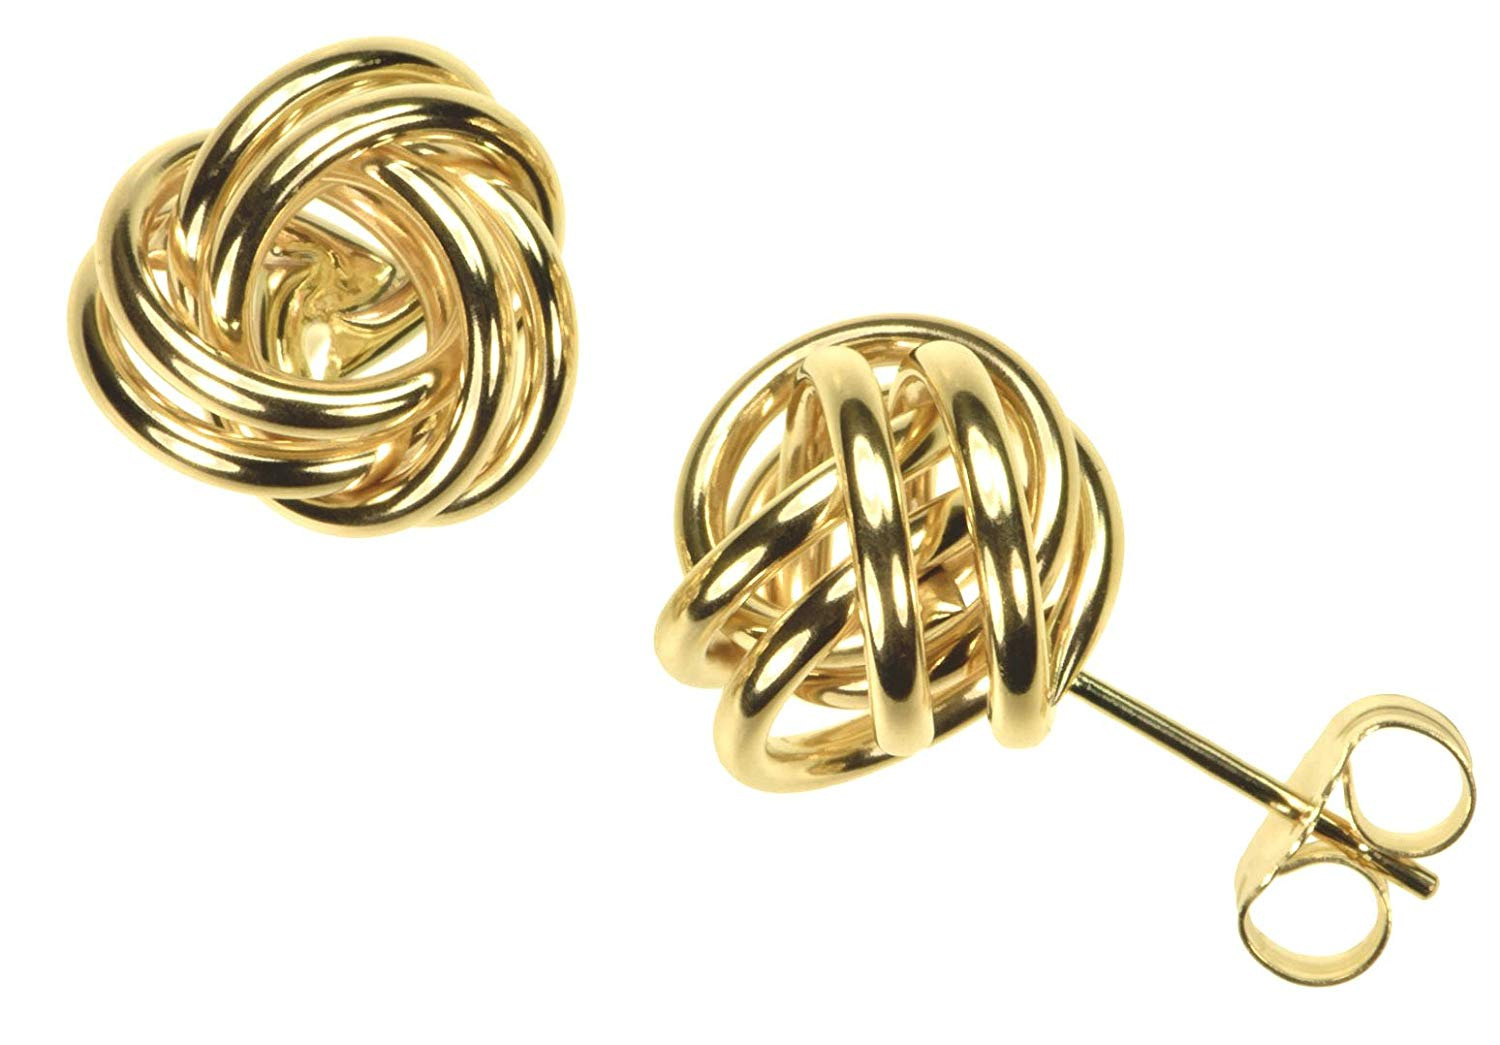 14K Gold 10mm Love Knot Earrings